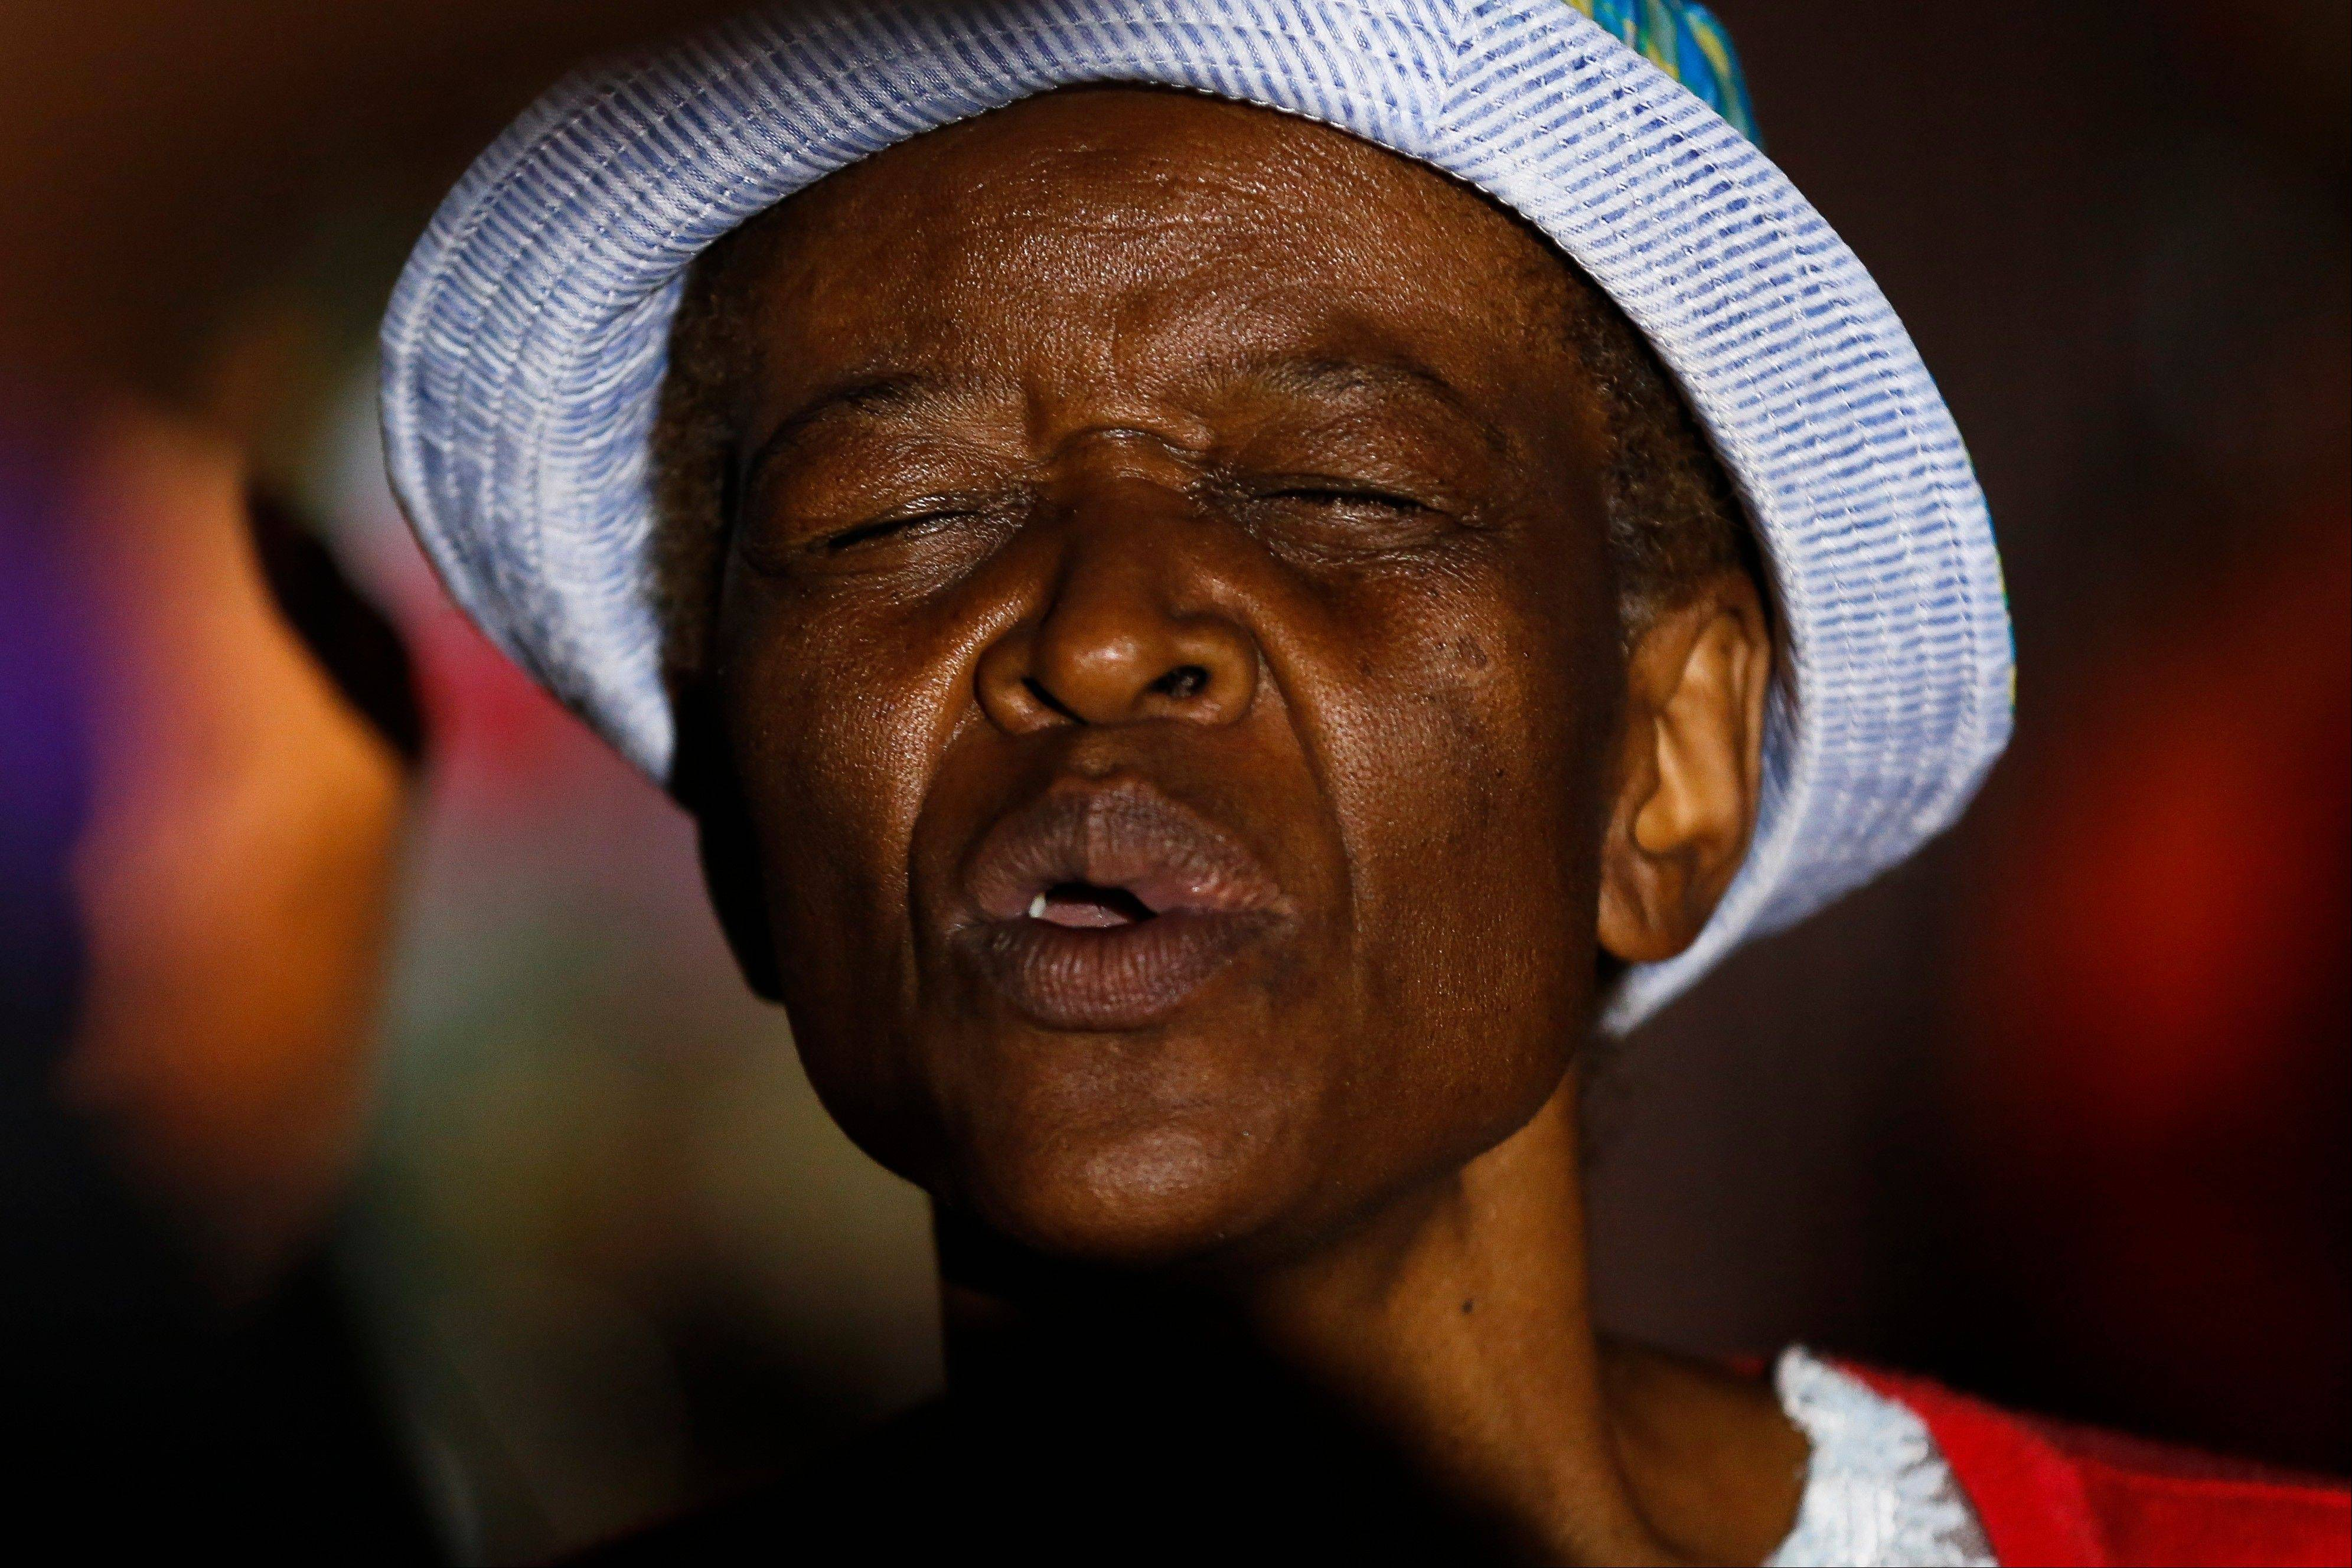 An elder woman prays for former South African President Nelson Mandela in the crowed street outside his old house in Soweto, Johannesburg, South Africa, Sunday.